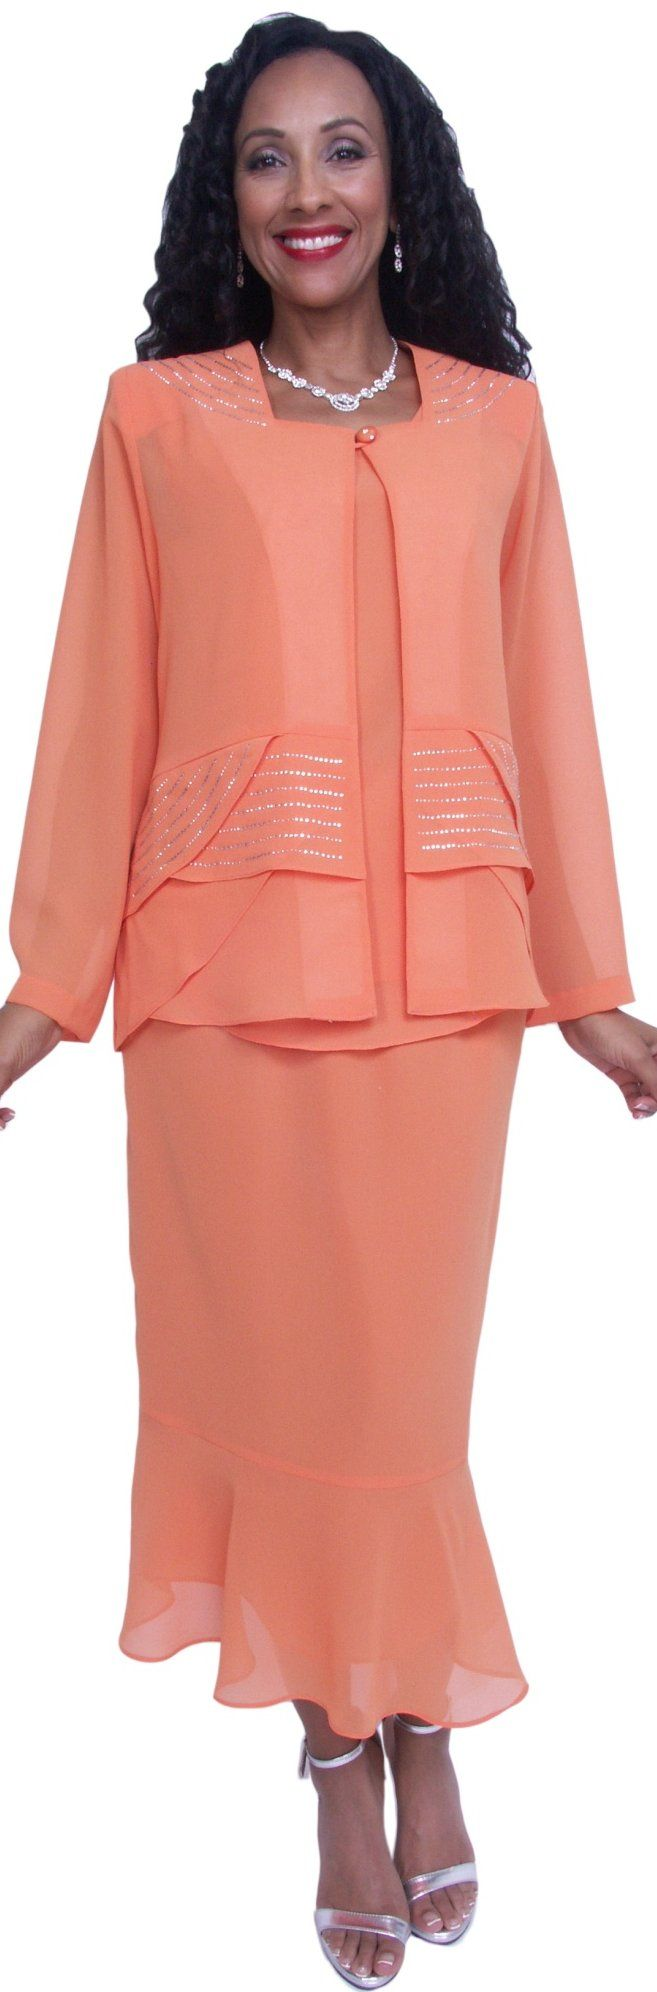 Dinner Party Plus Size Dress Orange Tea Length #discountdressshop #partydress #orangedress #tealengthdress #formalwear